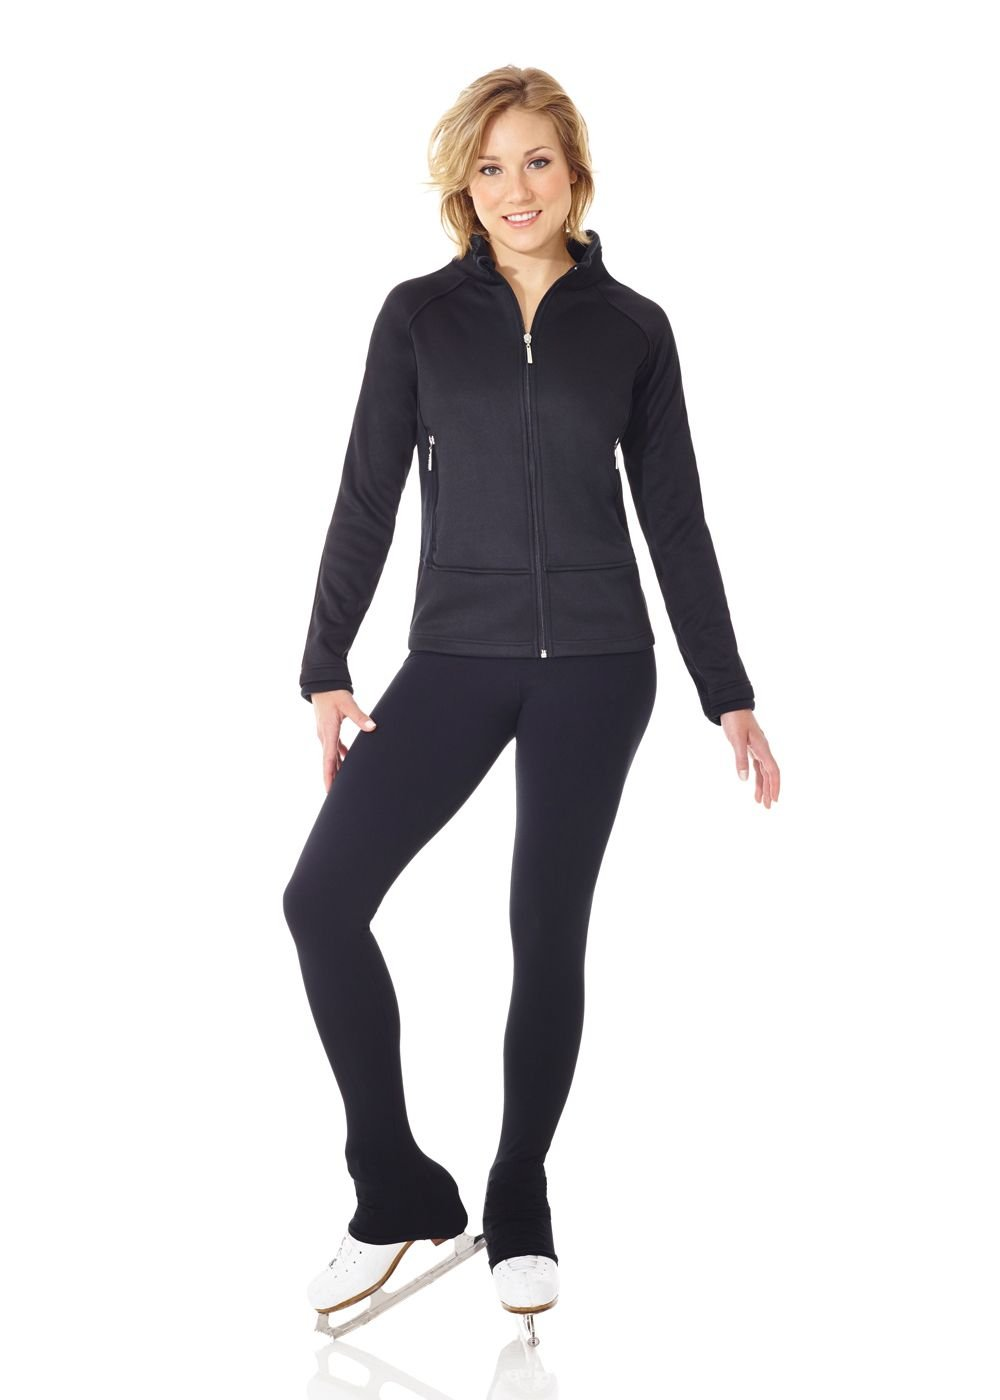 MONDOR WOMEN JACKET (BLACK, 12-14) by Mondor